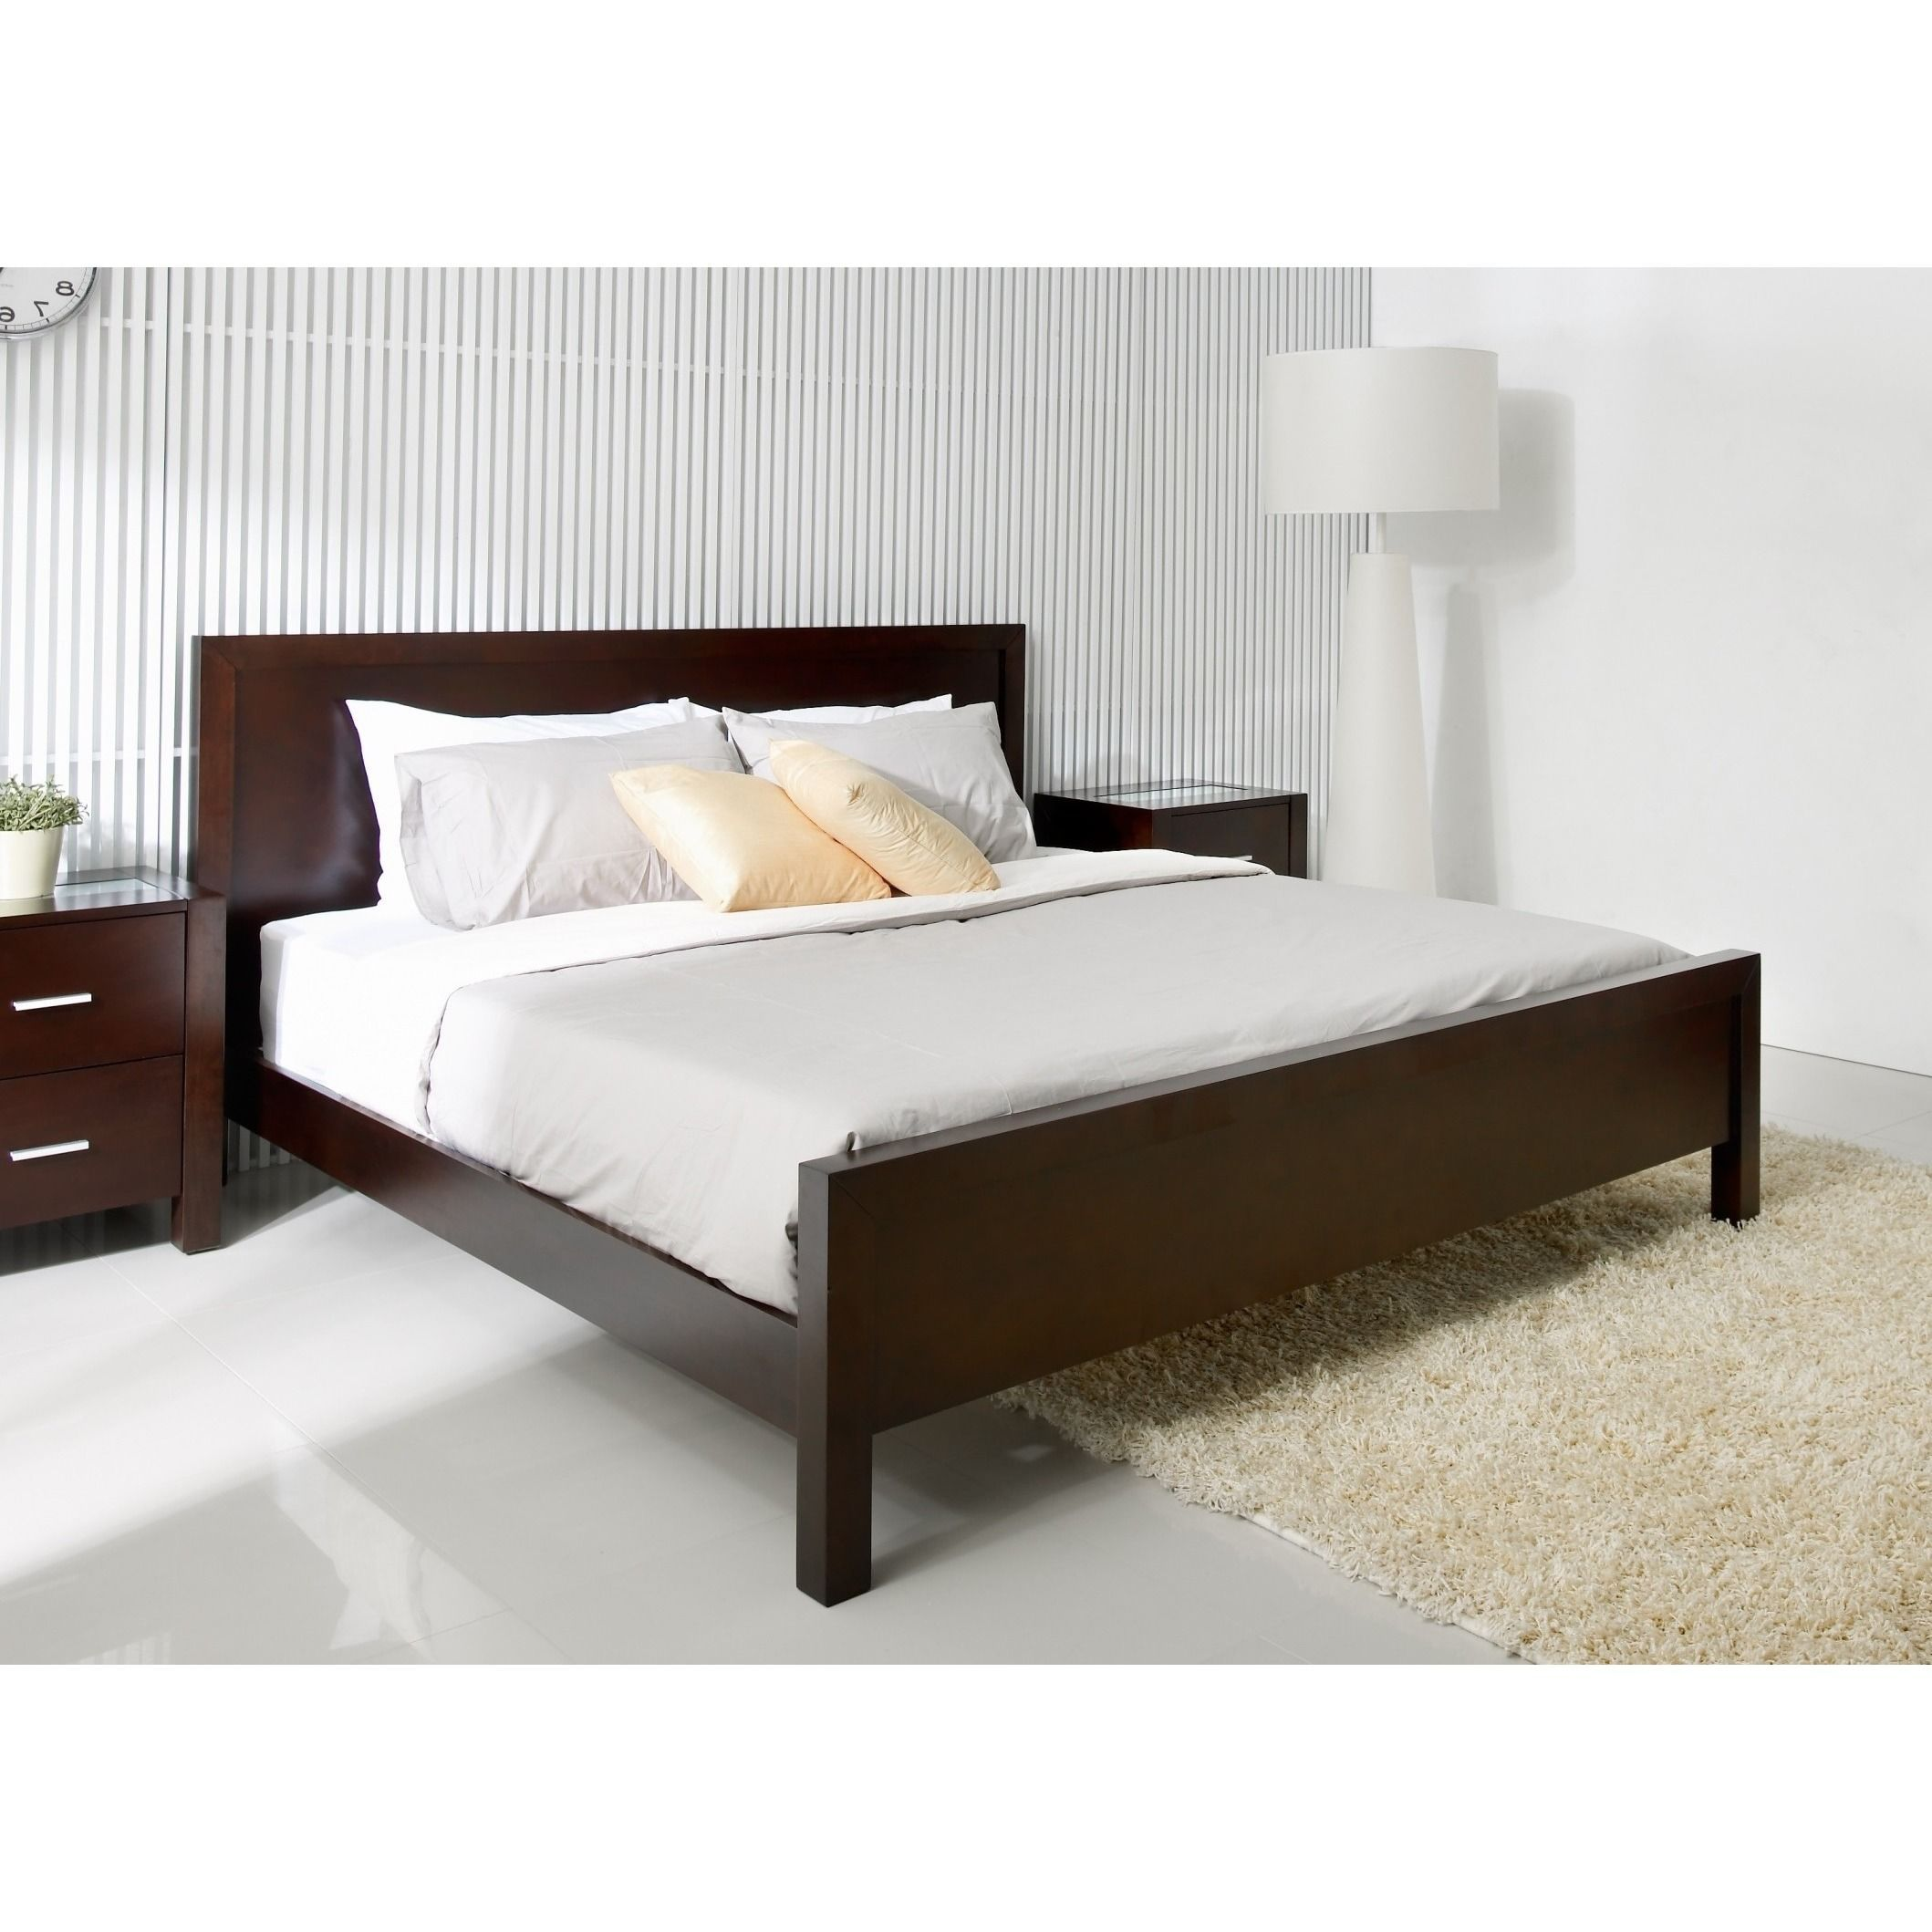 Abbyson hamptons king size platform bed white home - King size bedroom set with mattress ...